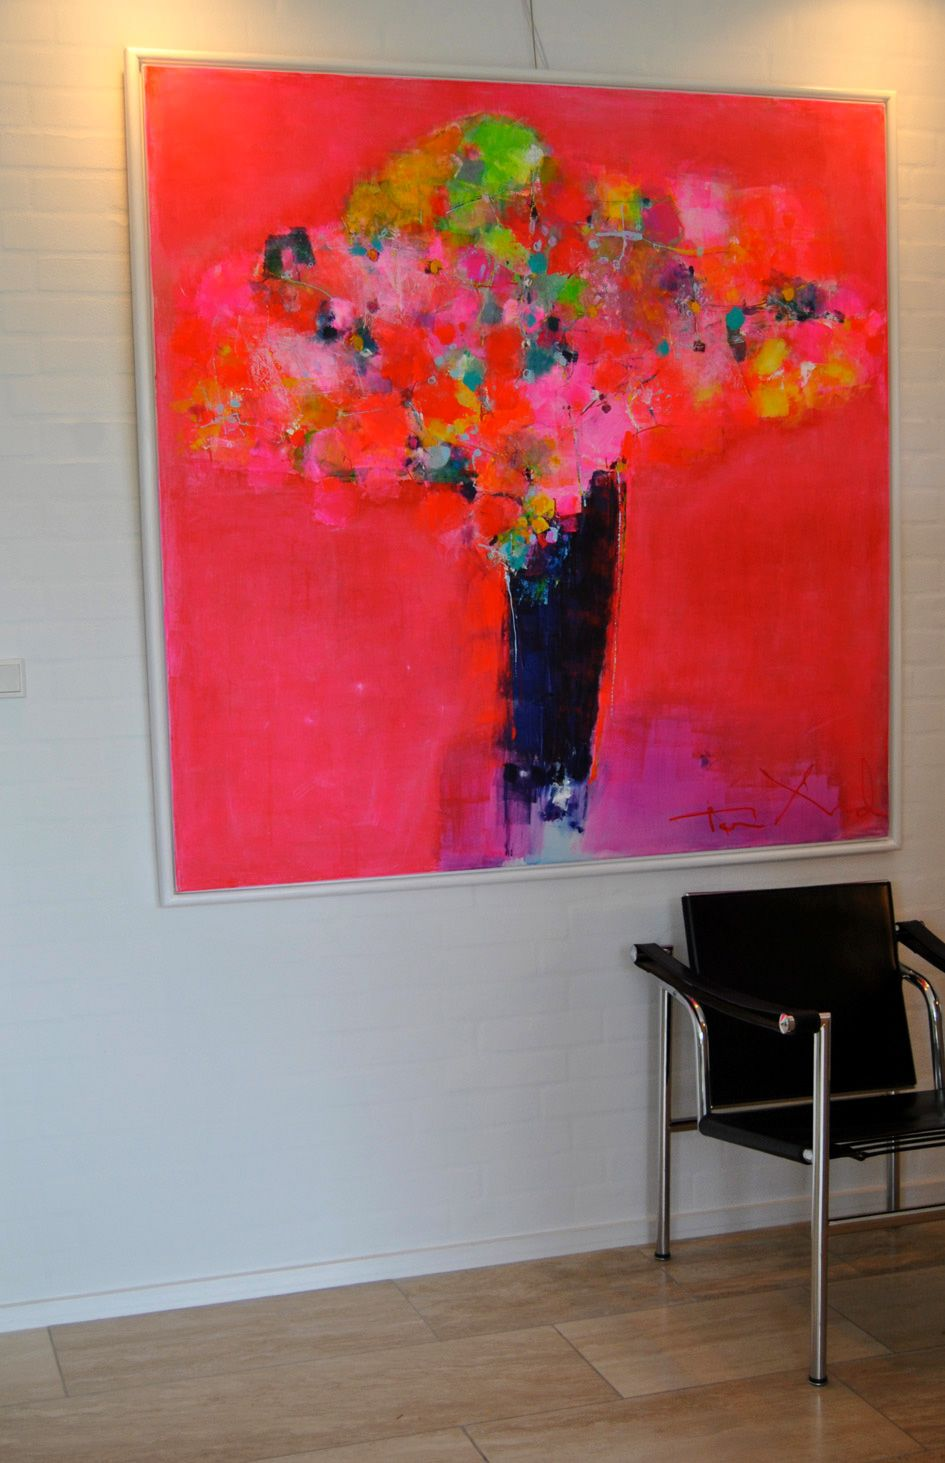 Abstract Floral Painting Abstract Floral Art Abstract Painting Artwork Interior Art Free Shipping Canada Bright Flowers